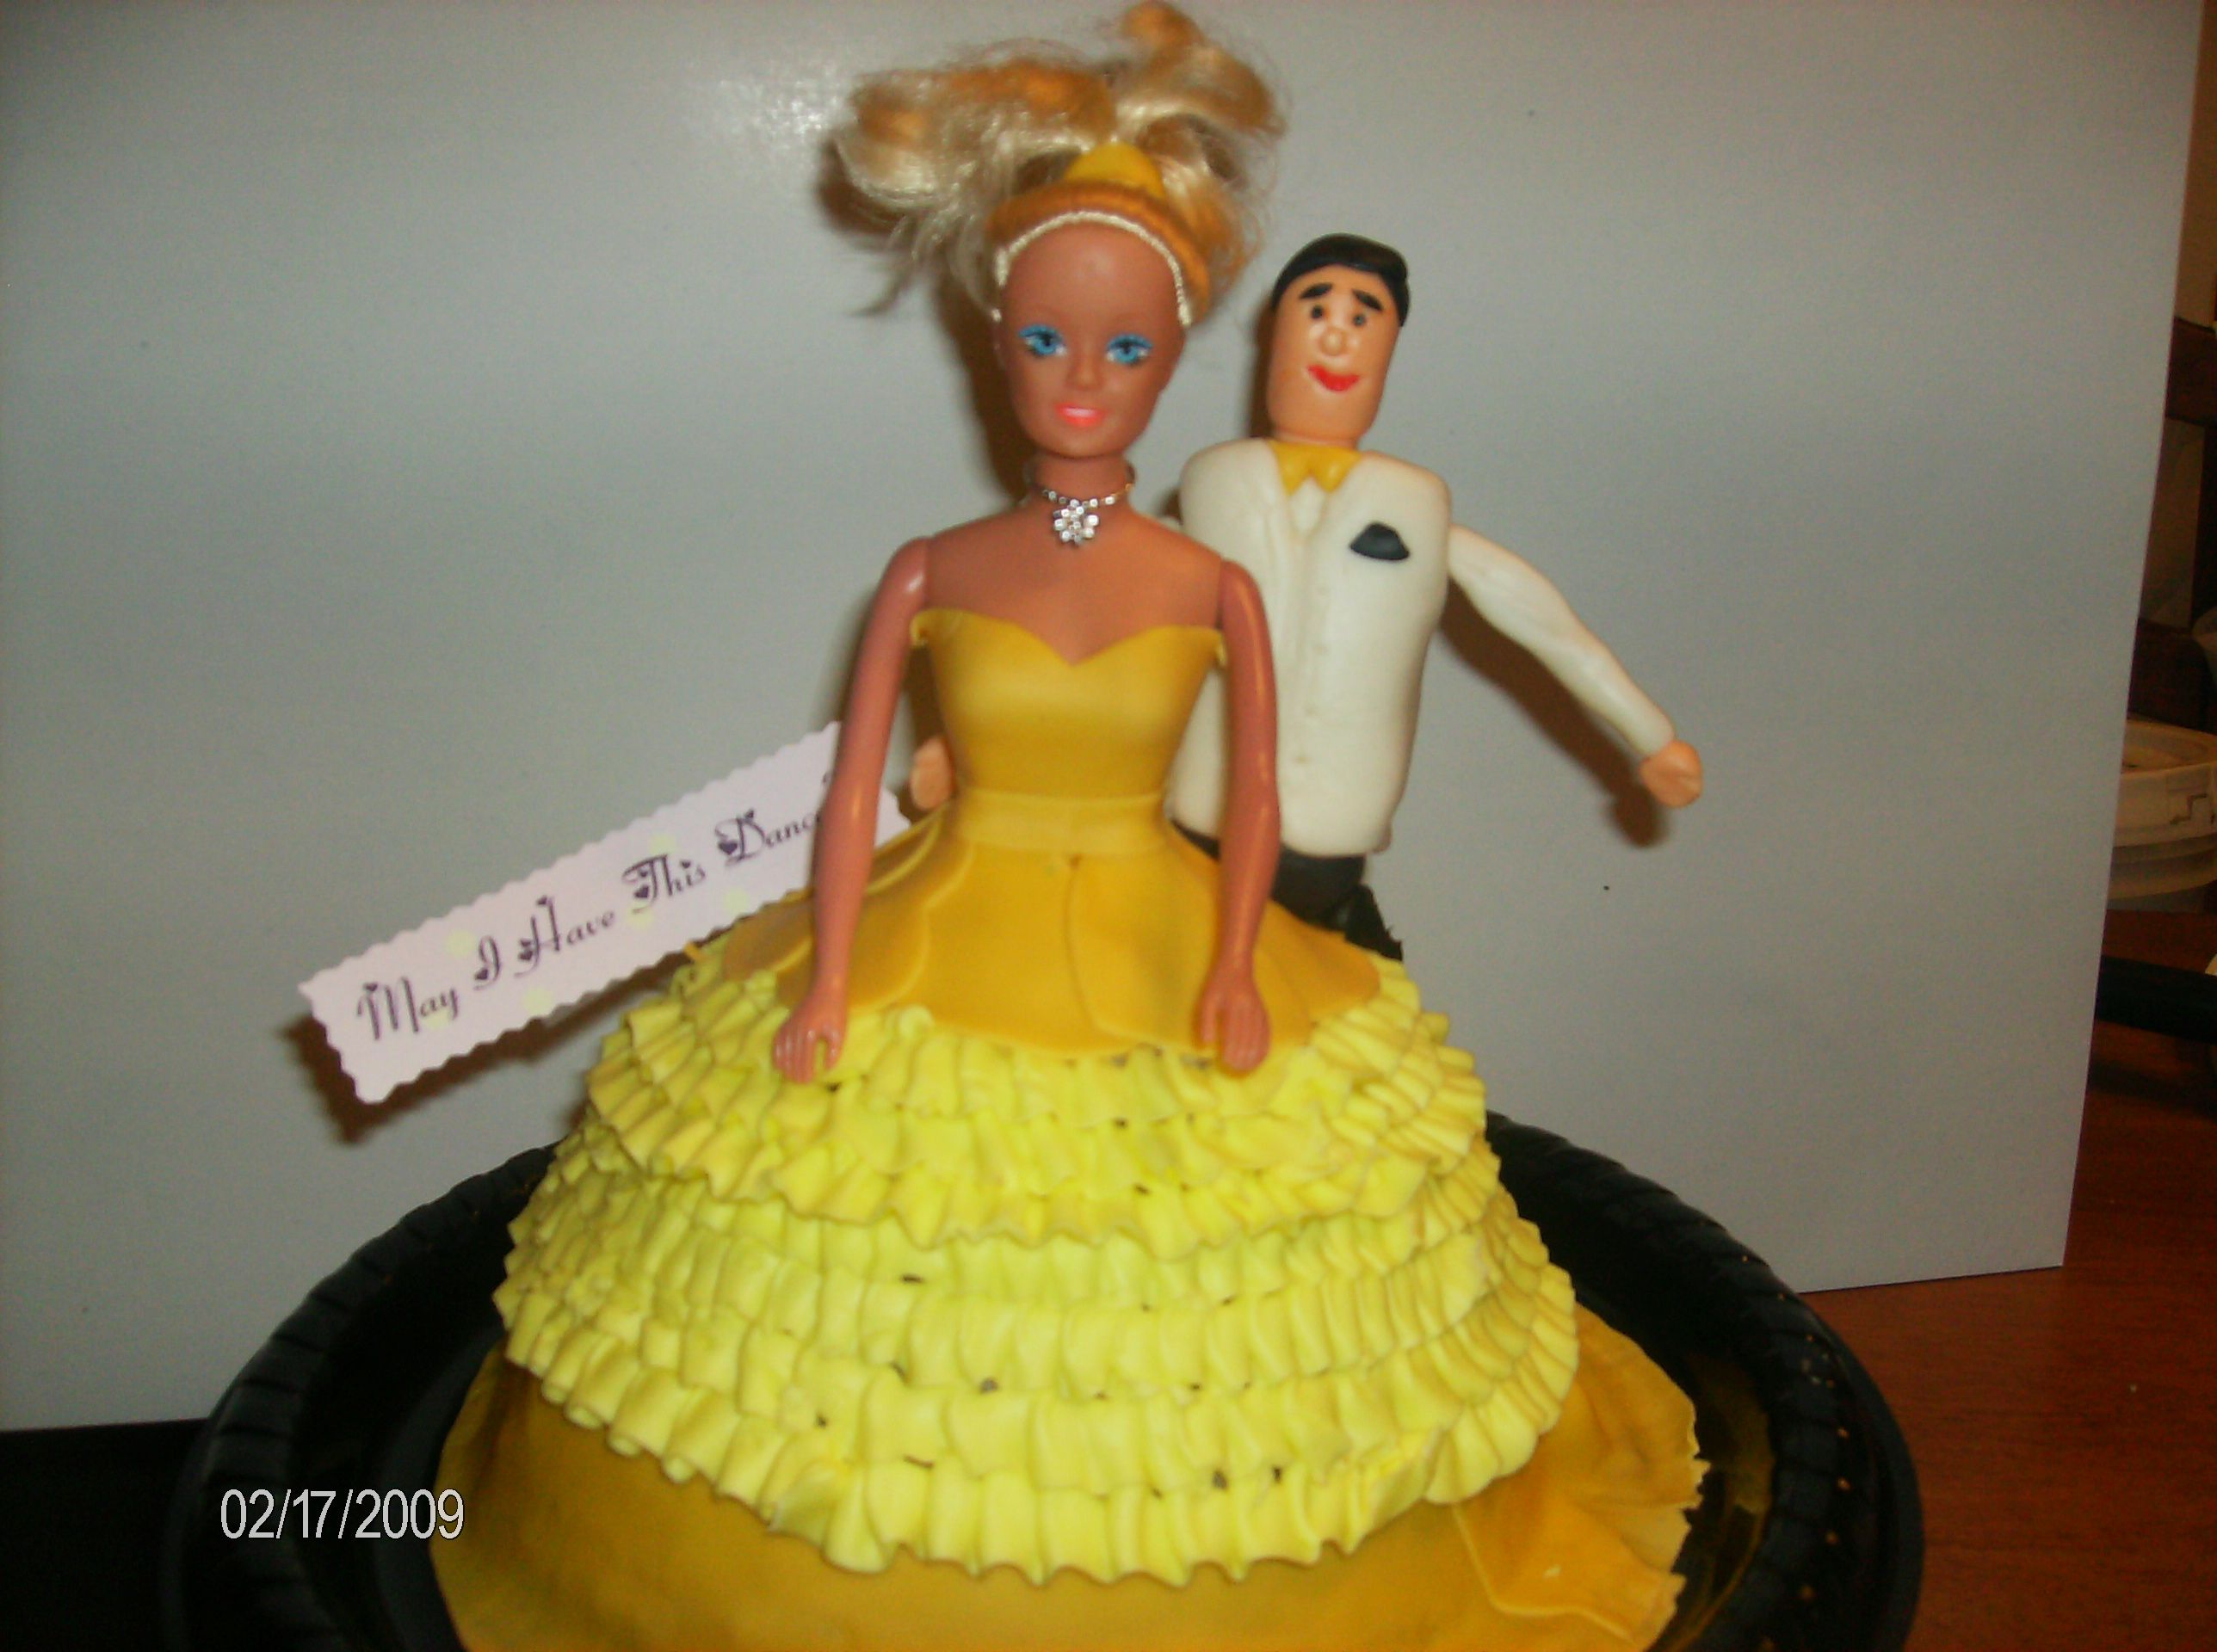 Traditional Barbie cake added a Fondant Fellow at her side ready to sweep her off her feet at the ball.